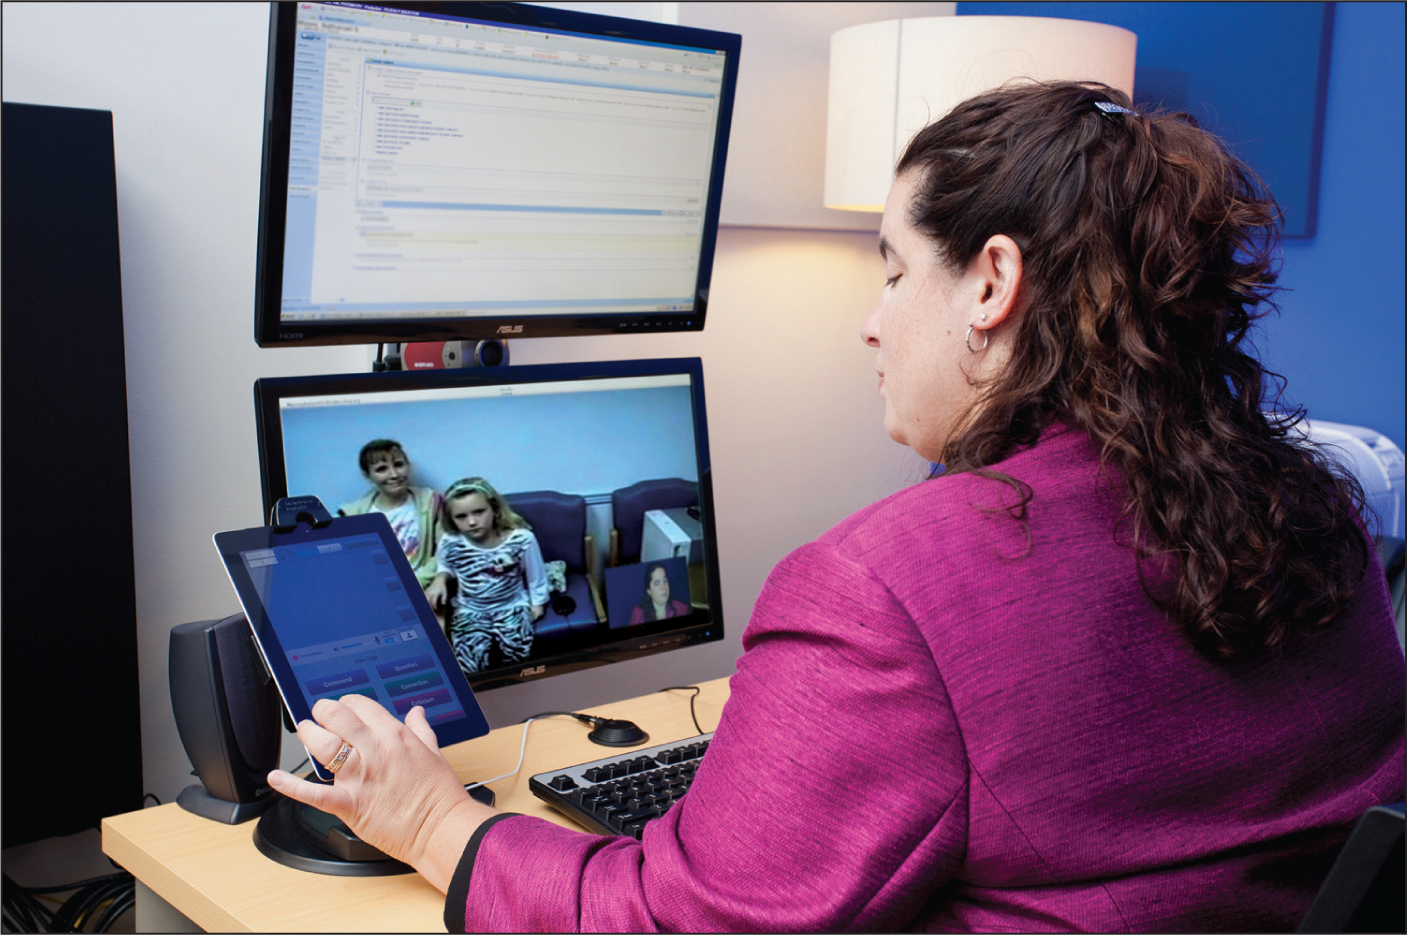 An example of standards-based videoteleconferencing.Images courtesy of Felissa Goldstein, MD, FAPA.